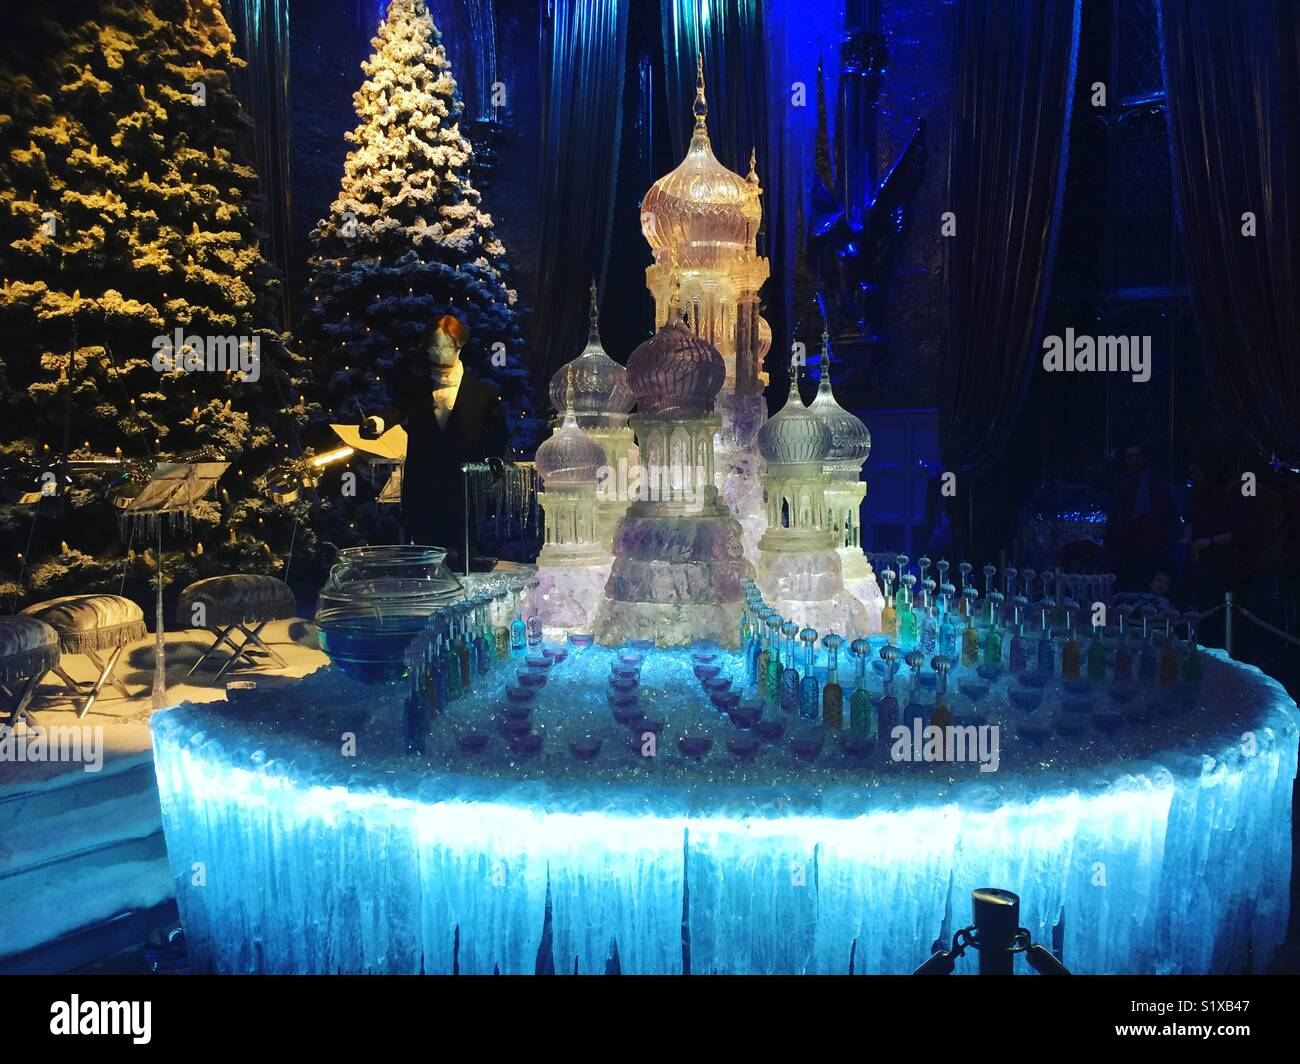 Yule ball - Stock Image